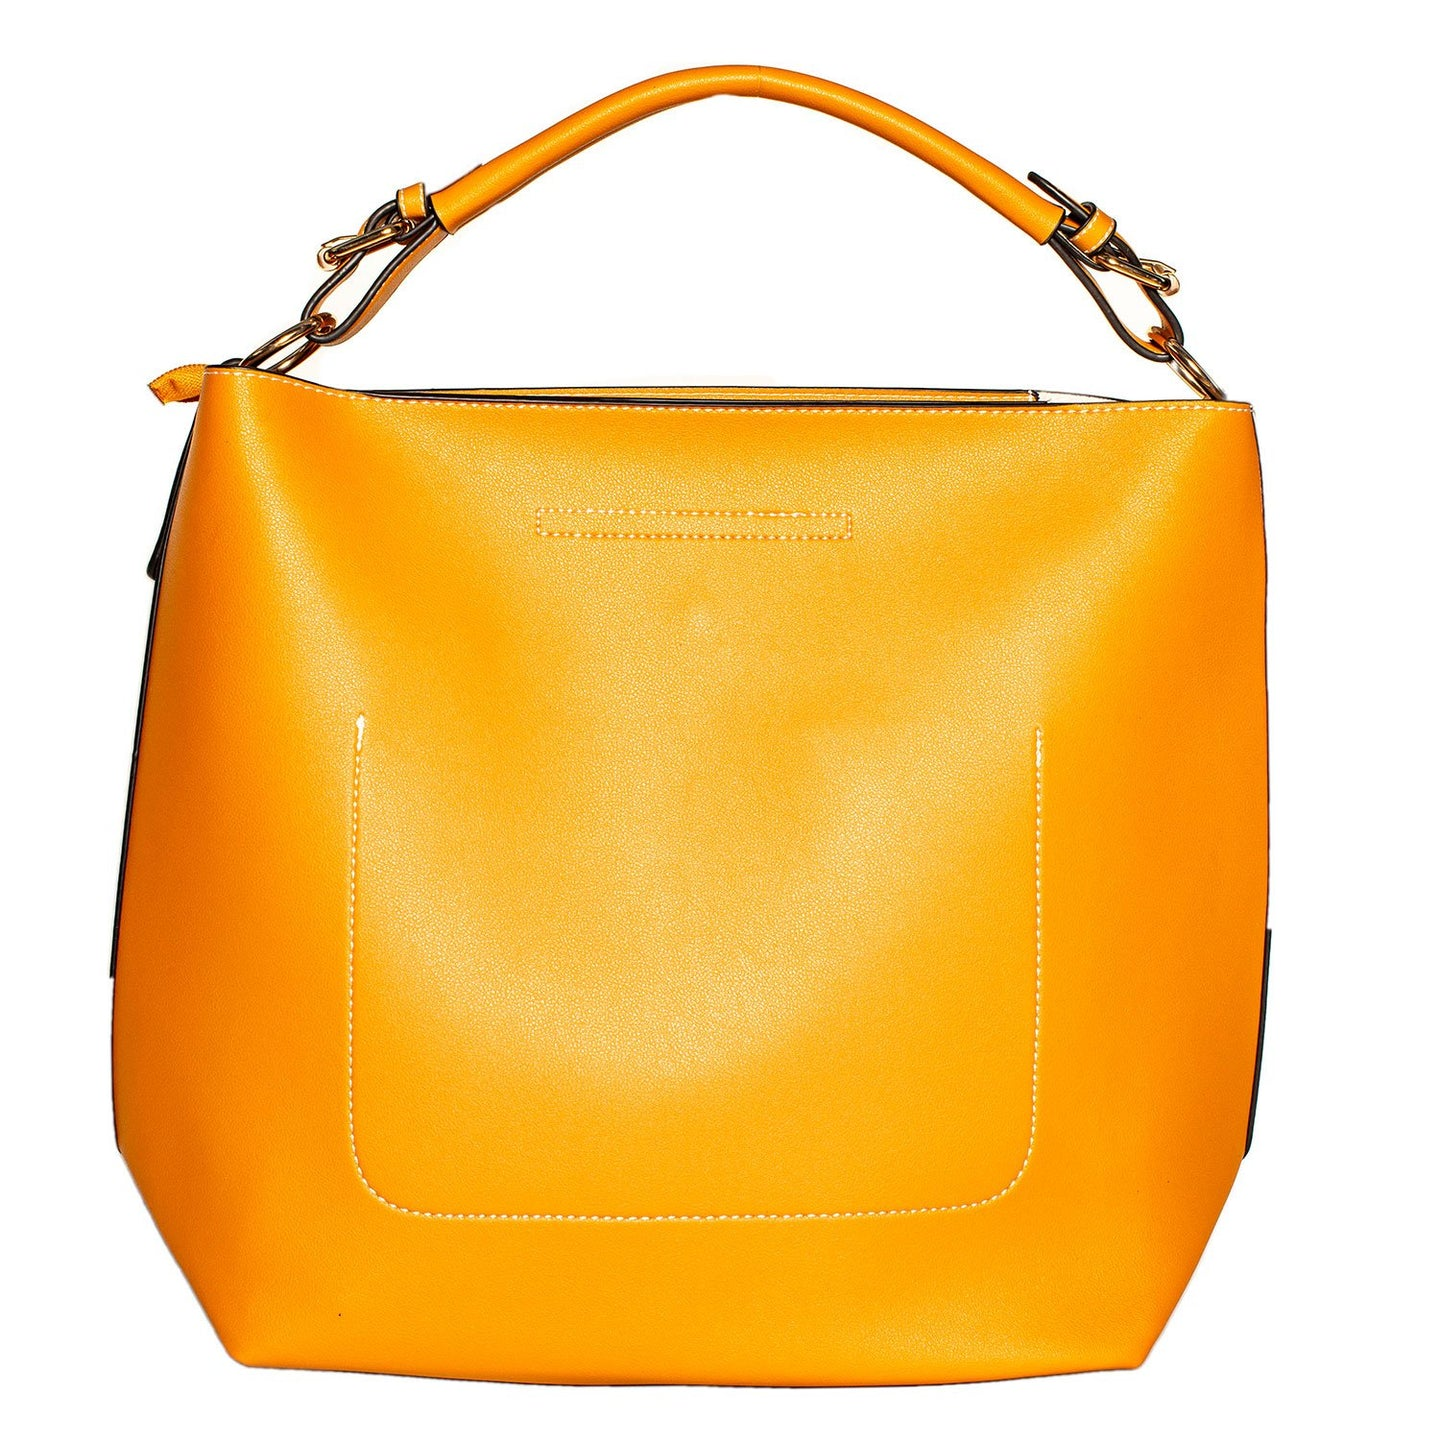 YELLOW TOTE HANDBAG WITH REMOVABLE PURSE  SHORT HANDLES